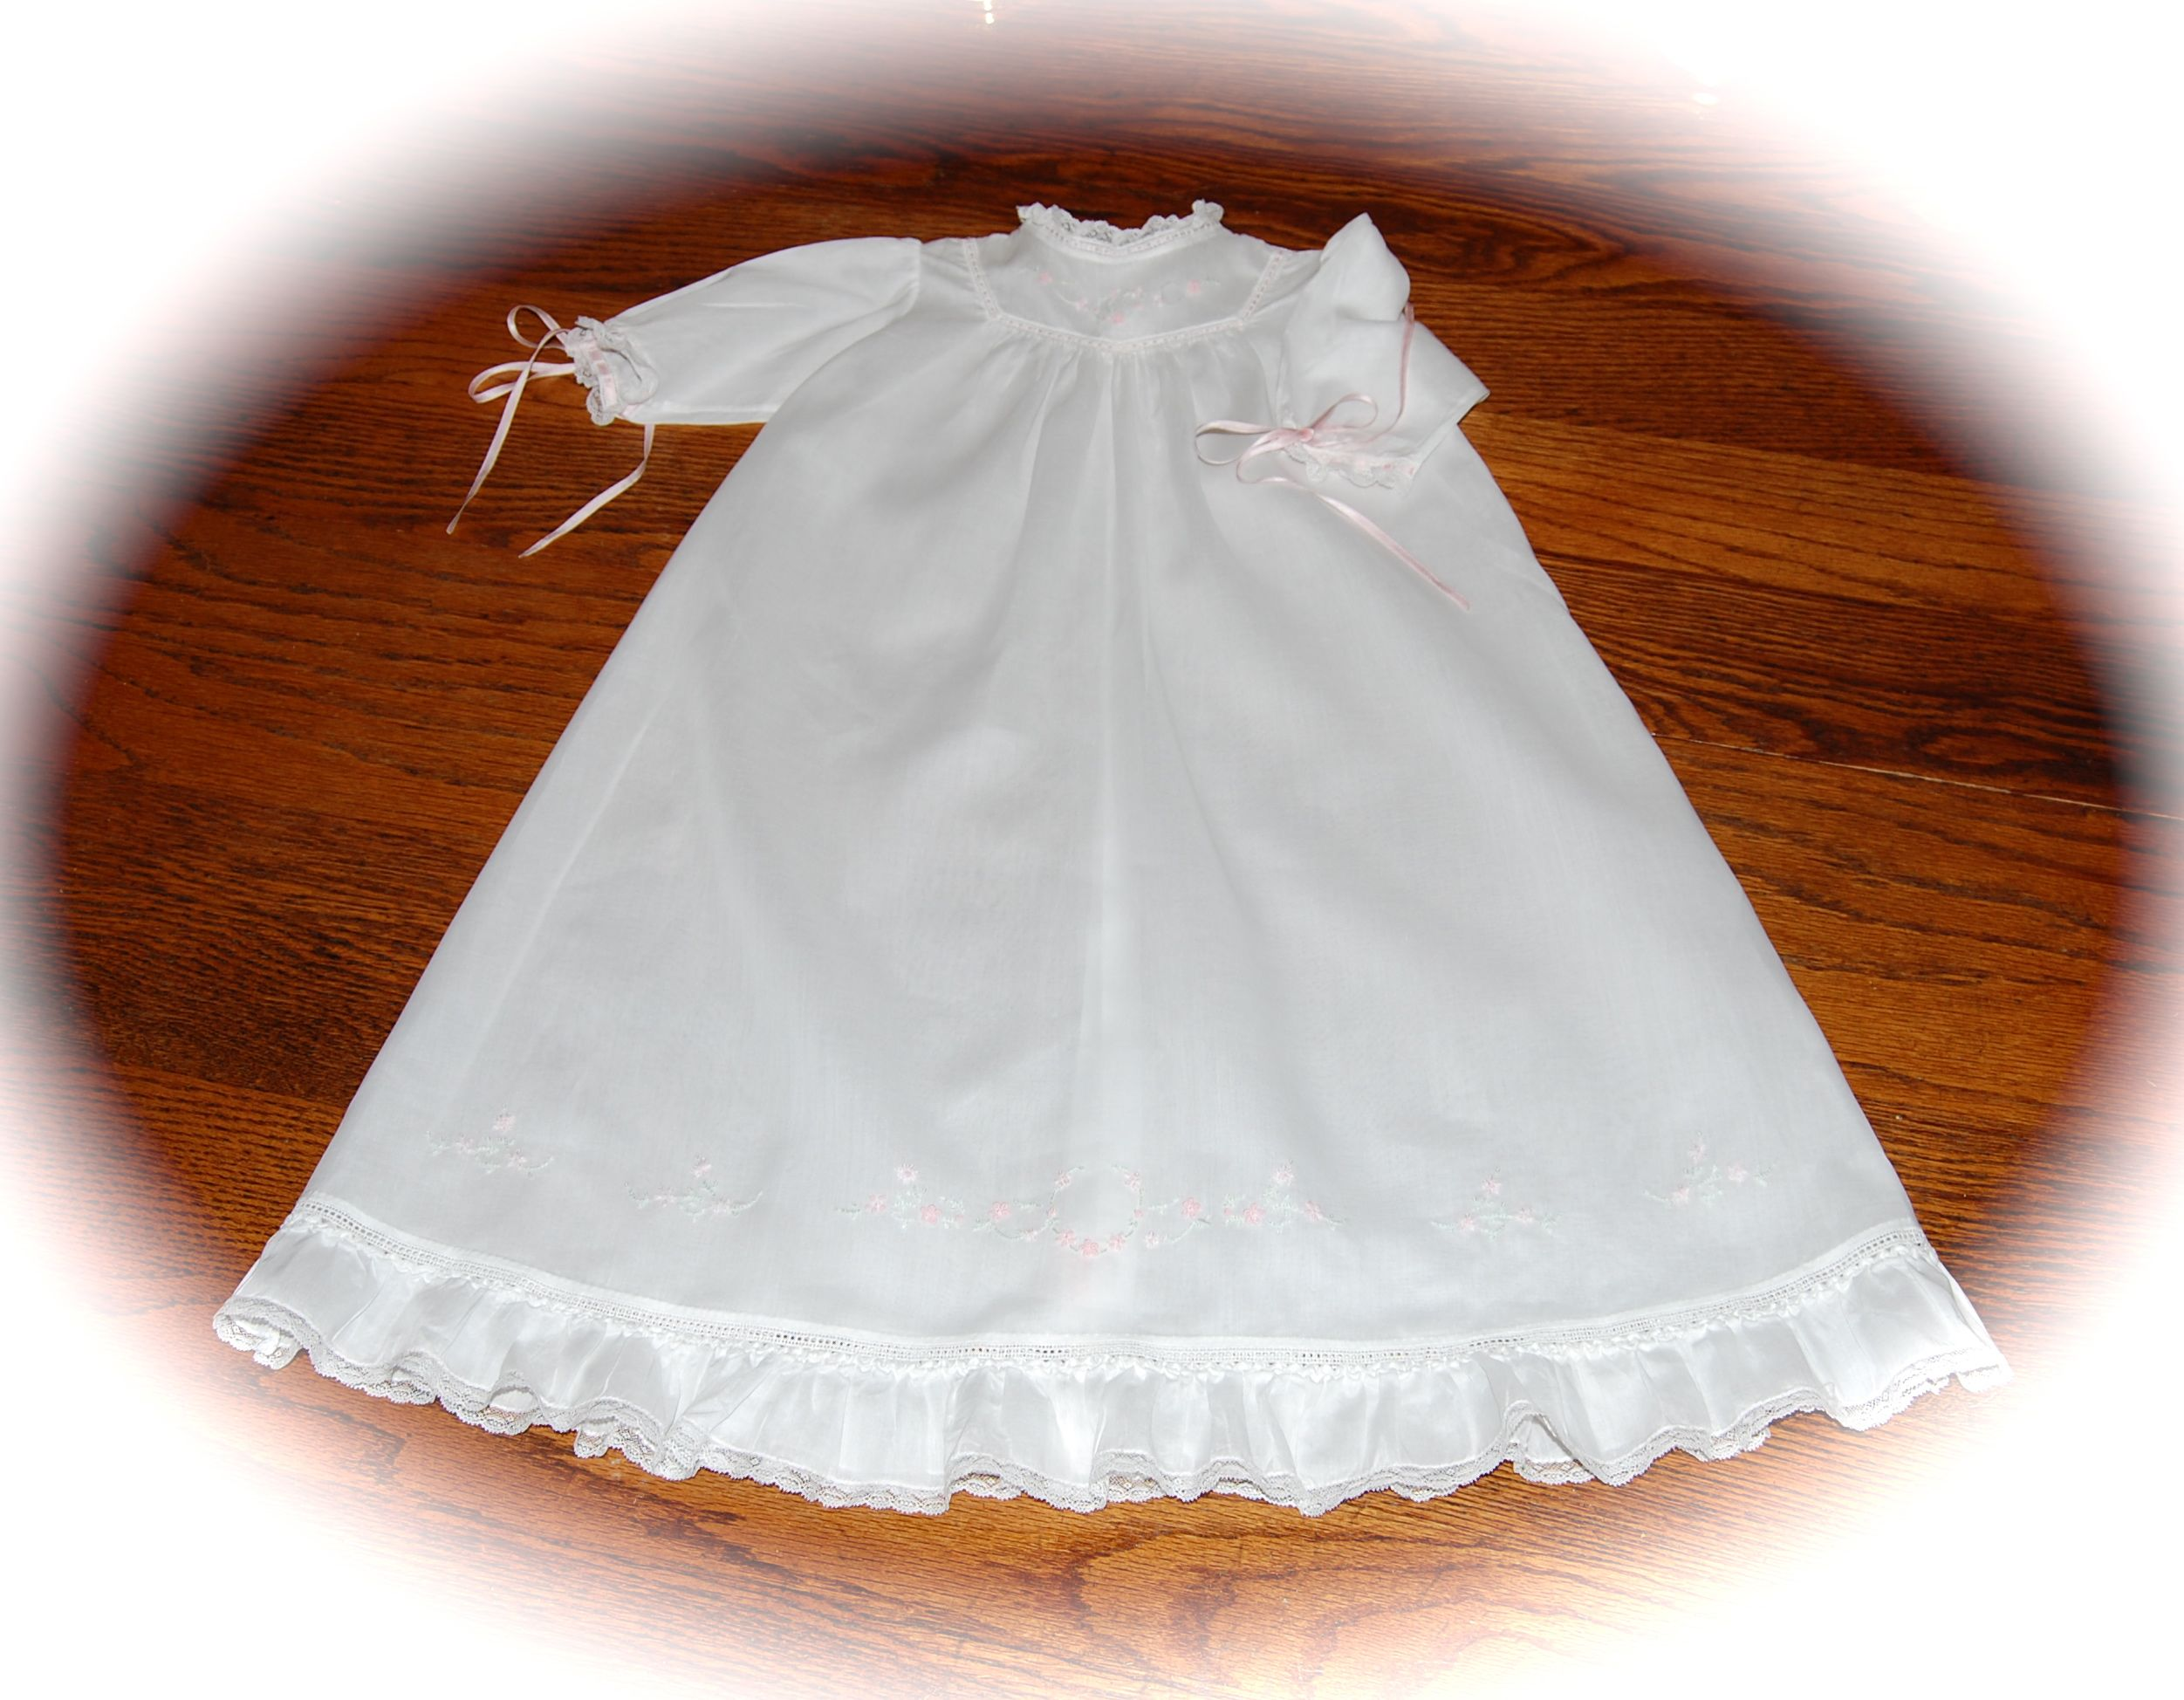 French Handsewn- Dorothy's Circa 1920 Baby Gown Kit